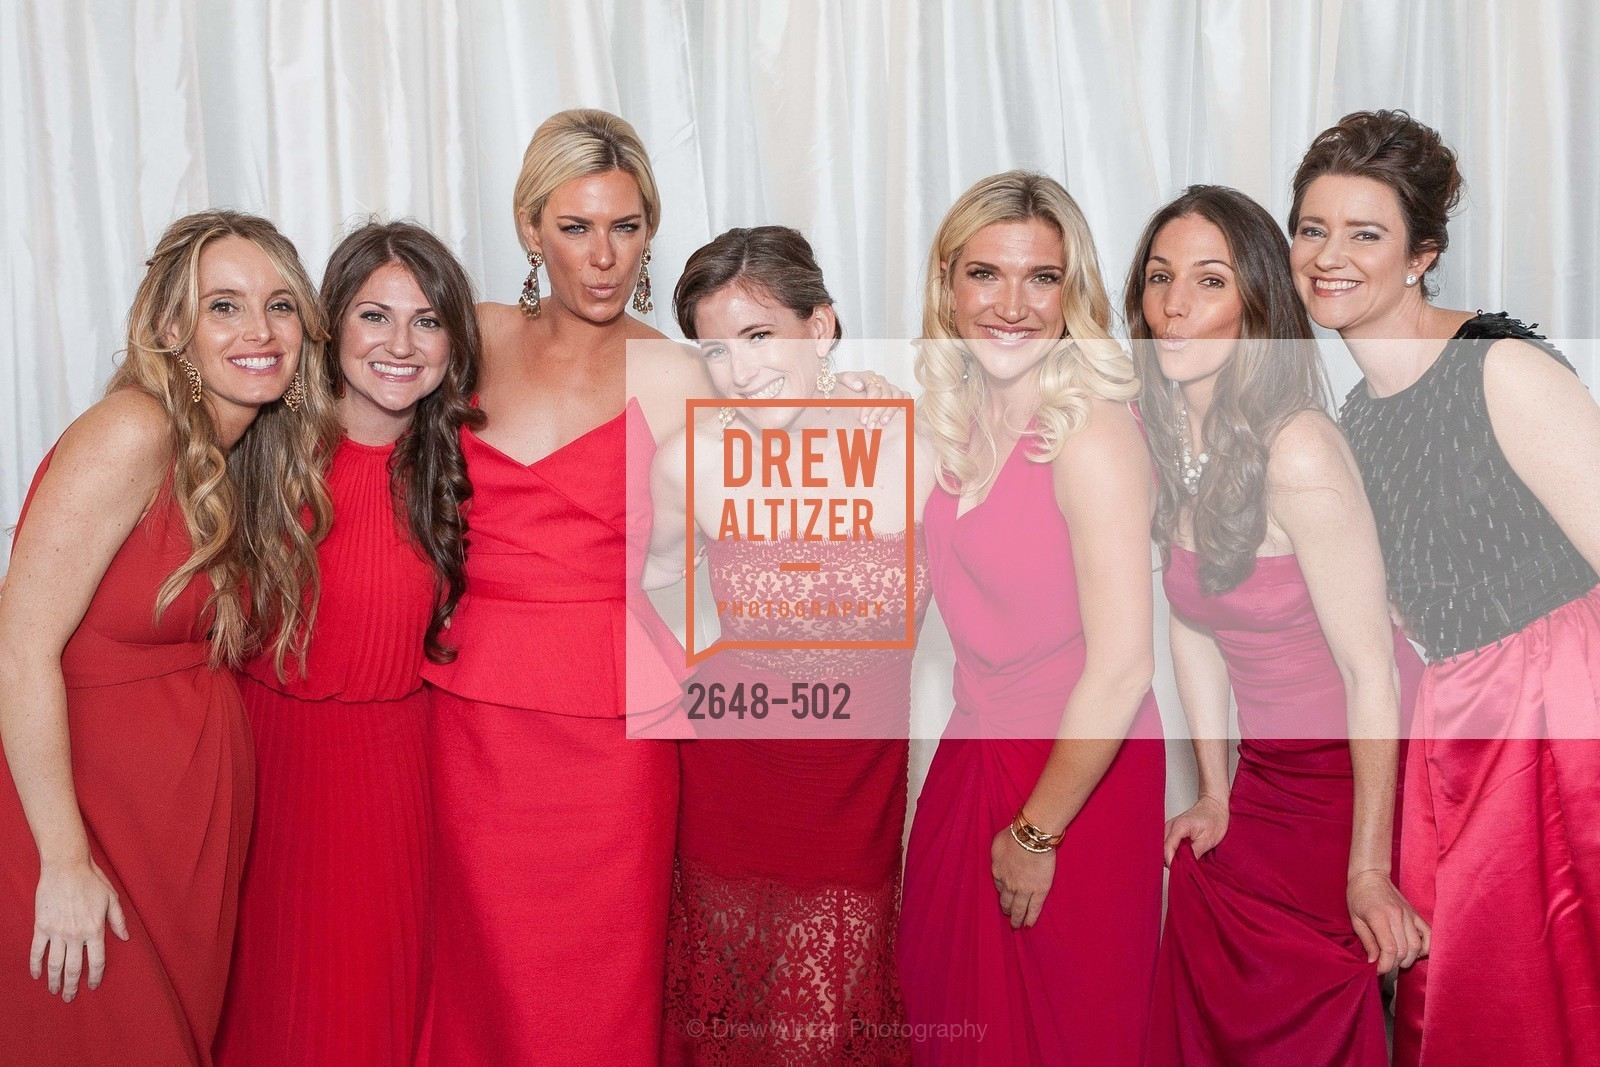 Lindsey Haswell, McCall Harwell, Colby Callen, Kaitlin Mulderig, Jacqueline Hawk, Susie Hall, Kirsten Strobel, 2014 RED CROSS Gala Honoring Paula Downey as the American Red Cross Bay Area Chapter Humanitarian CEO of the Year, US. Treasure Island (The Great Lawn), April 5th, 2014,Drew Altizer, Drew Altizer Photography, full-service agency, private events, San Francisco photographer, photographer california